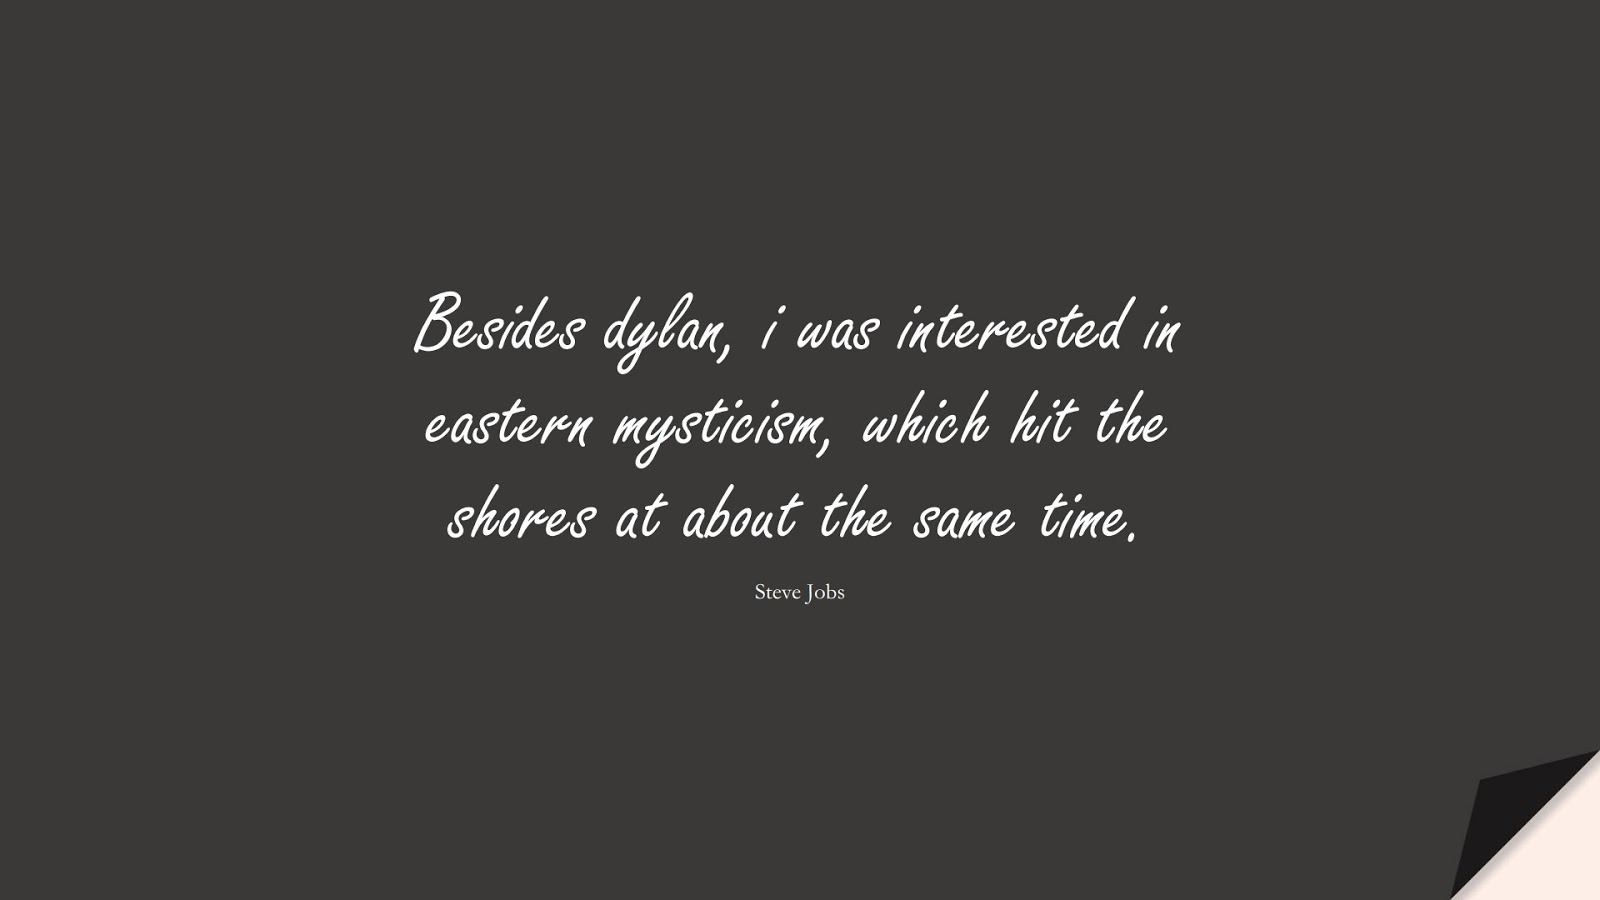 Besides dylan, i was interested in eastern mysticism, which hit the shores at about the same time. (Steve Jobs);  #SteveJobsQuotes